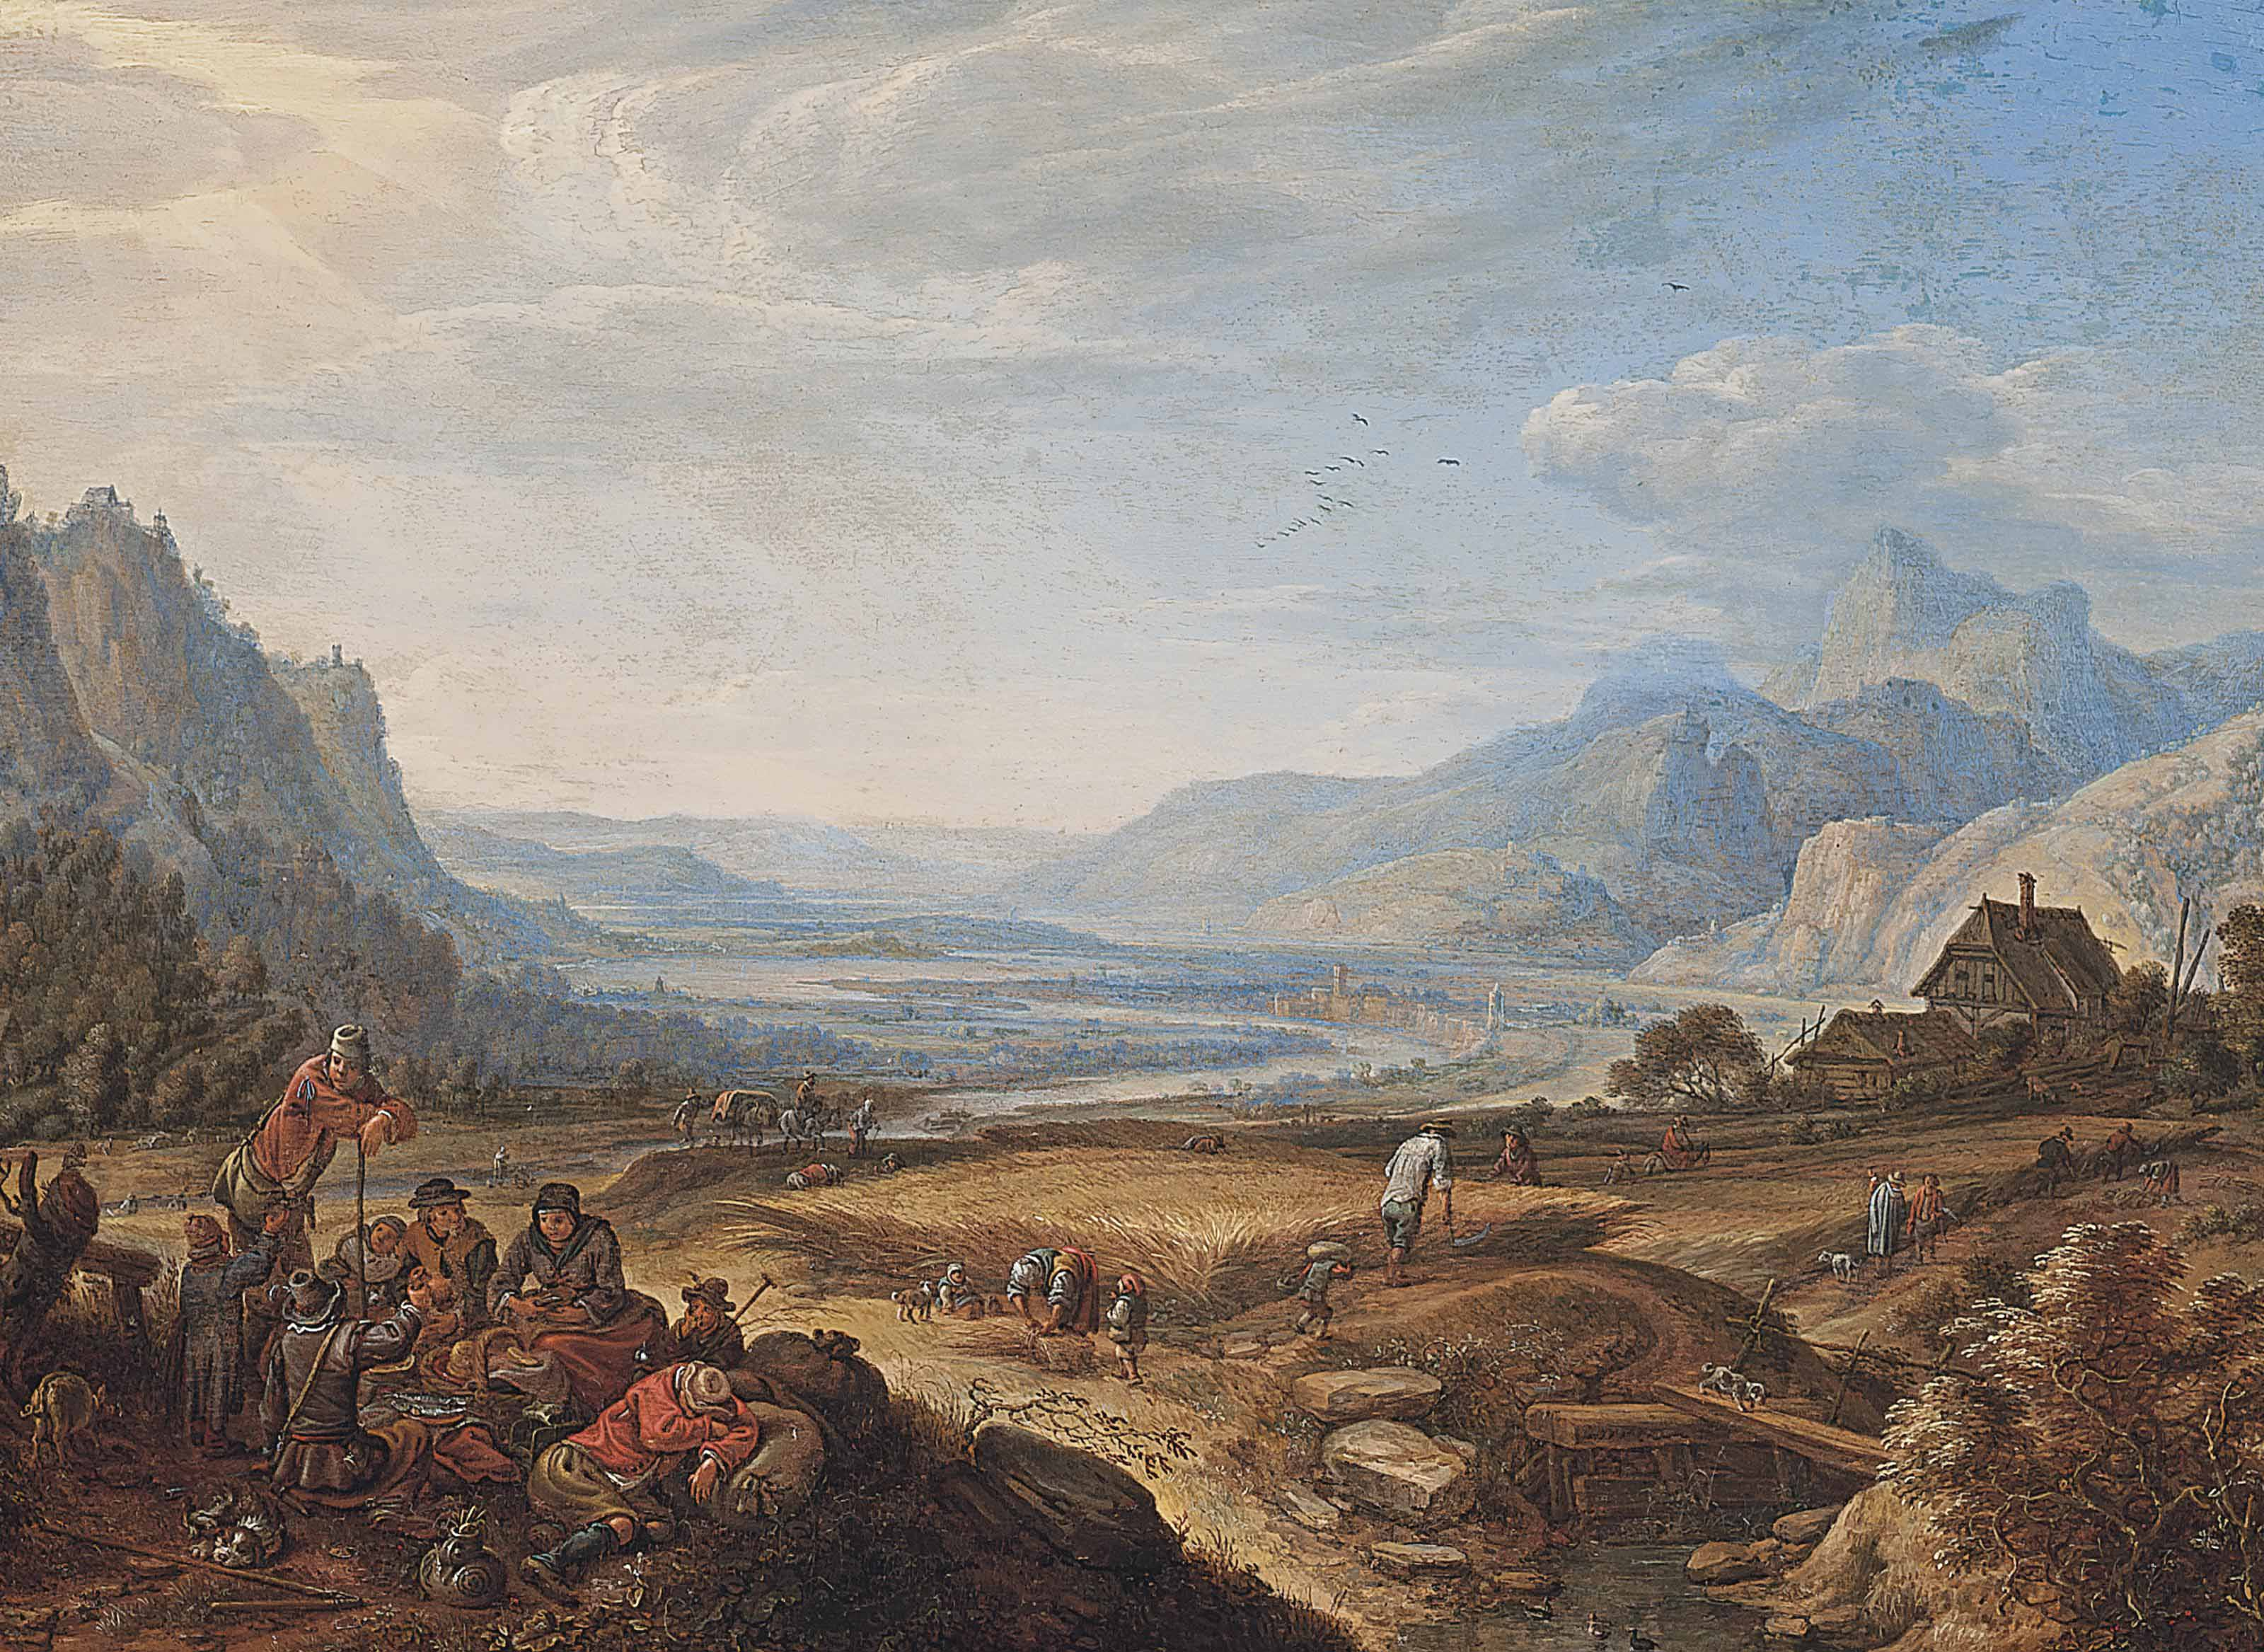 An extensive mountainous landscape with figures resting in the foreground, others harvesting, a river valley beyond